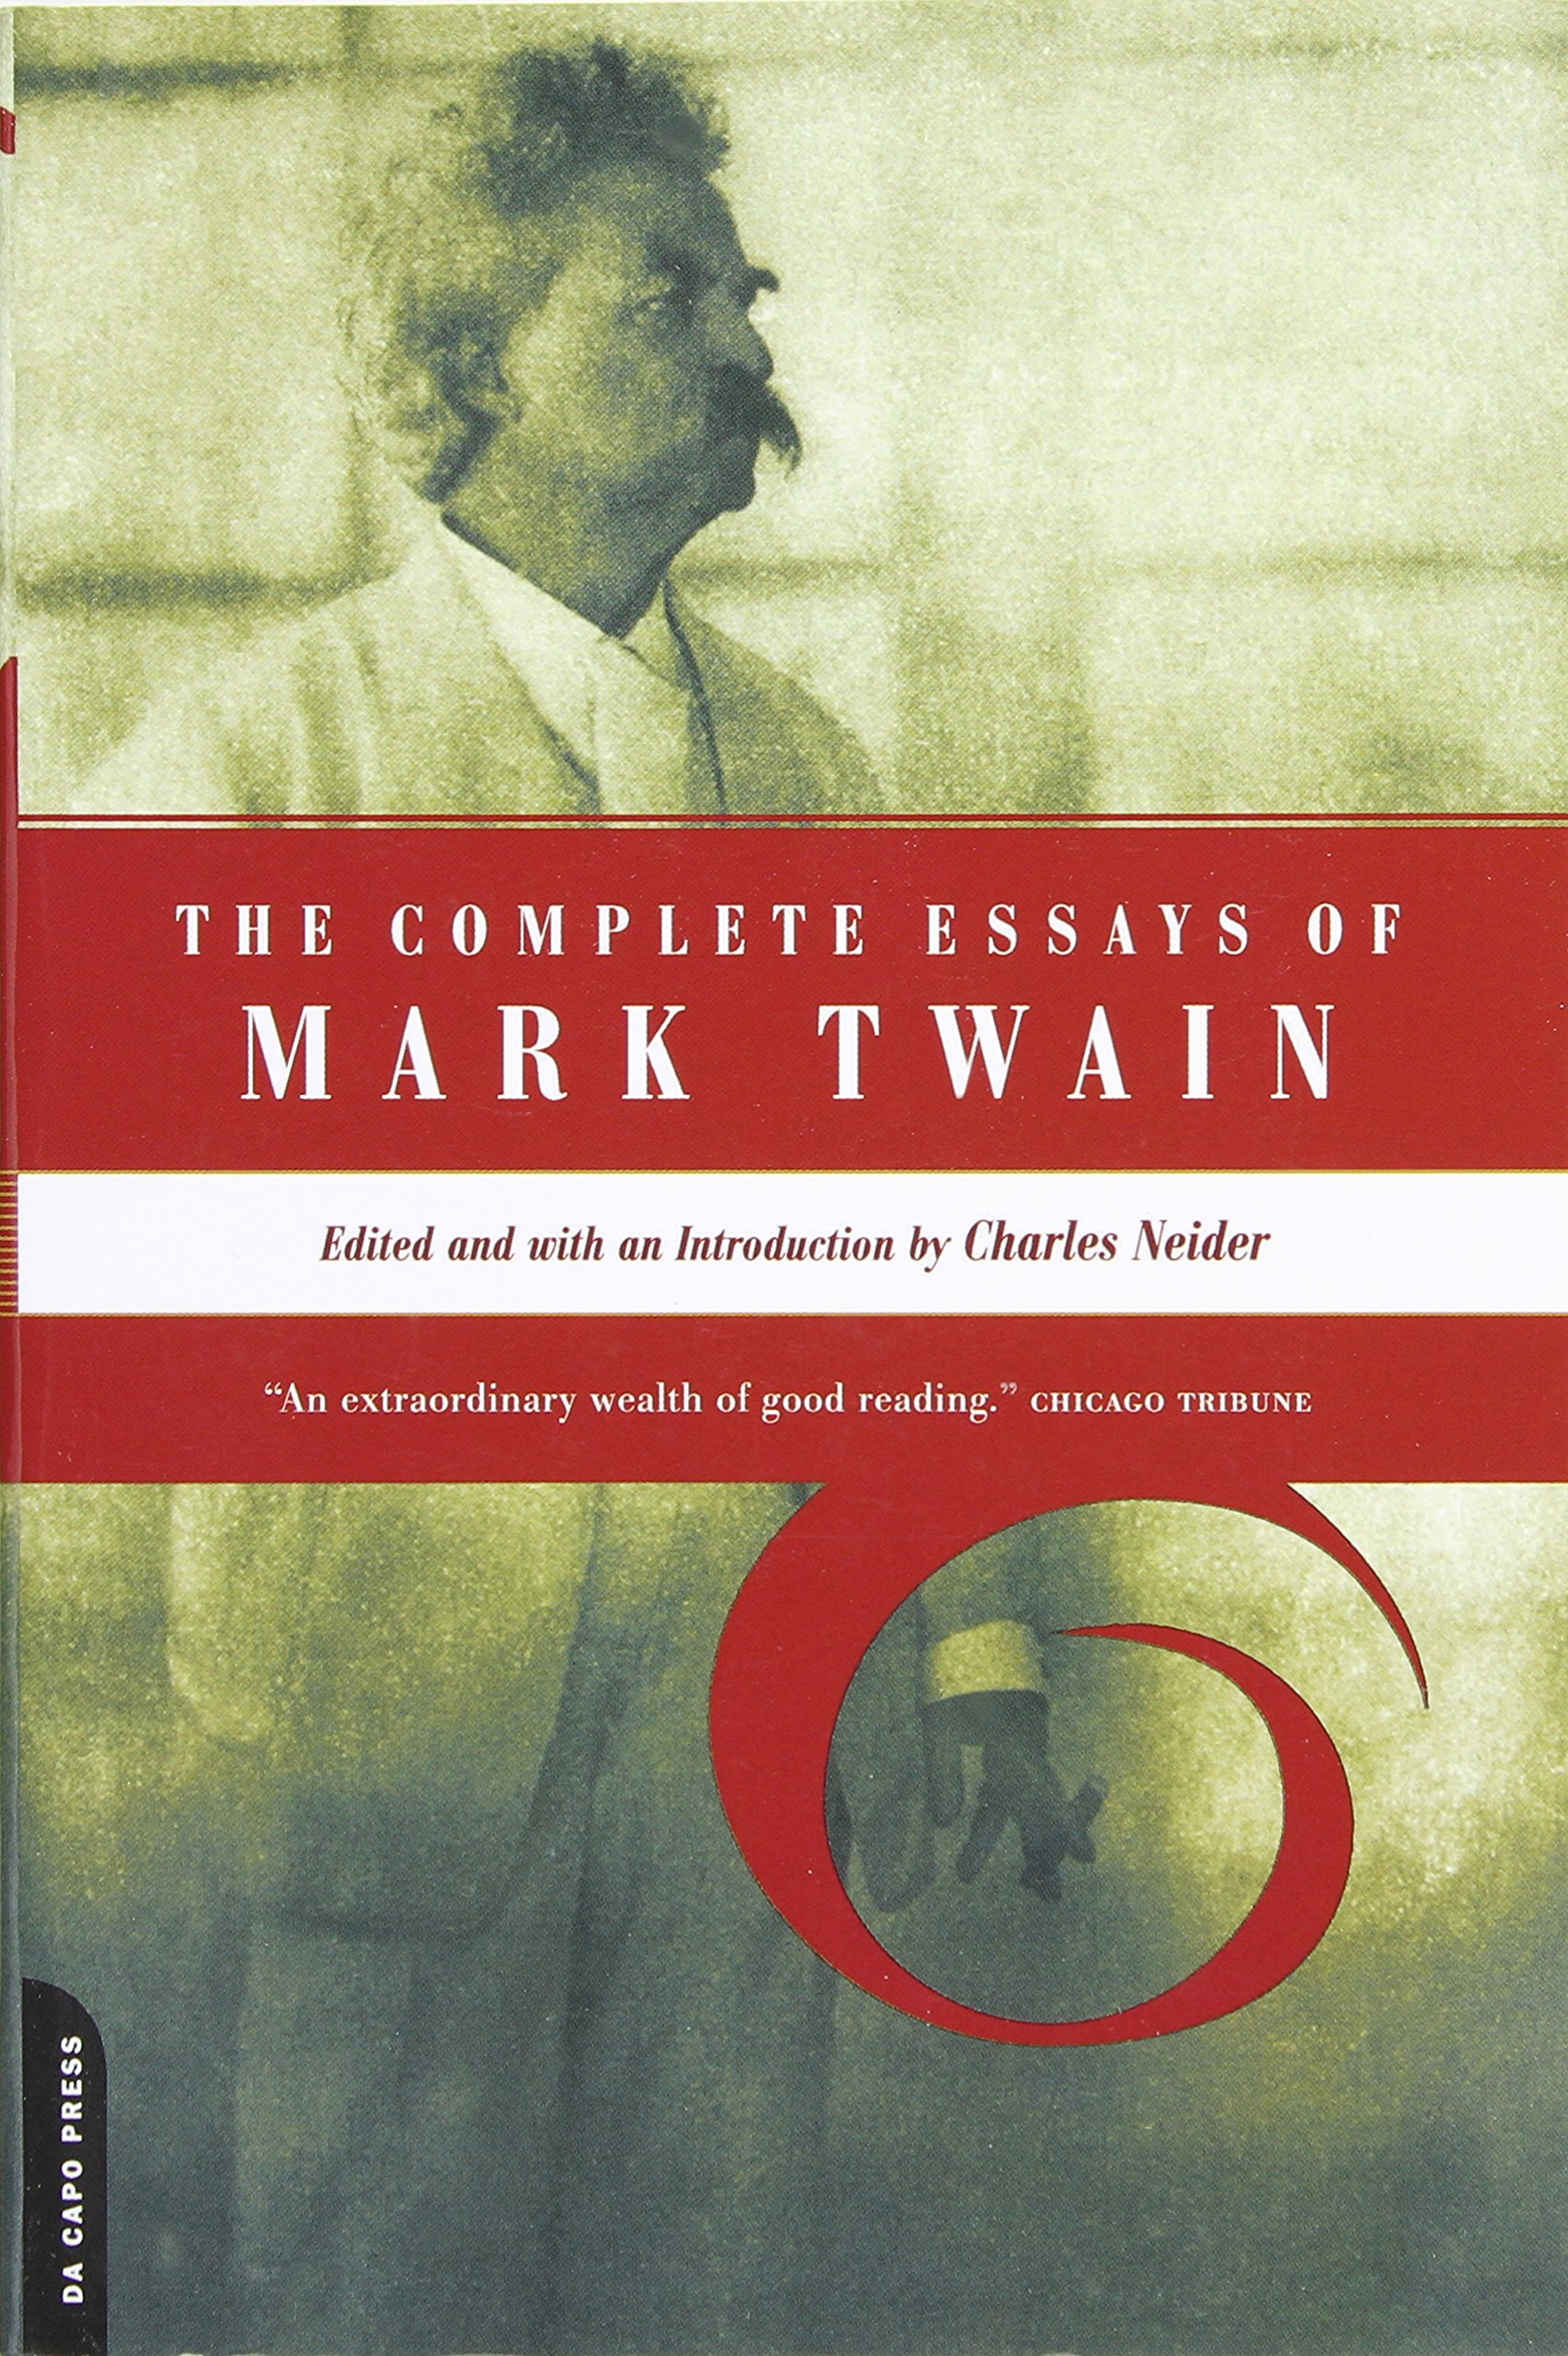 the complete essays of mark twain mark twain charles neider the complete essays of mark twain mark twain charles neider 9780306809576 com books